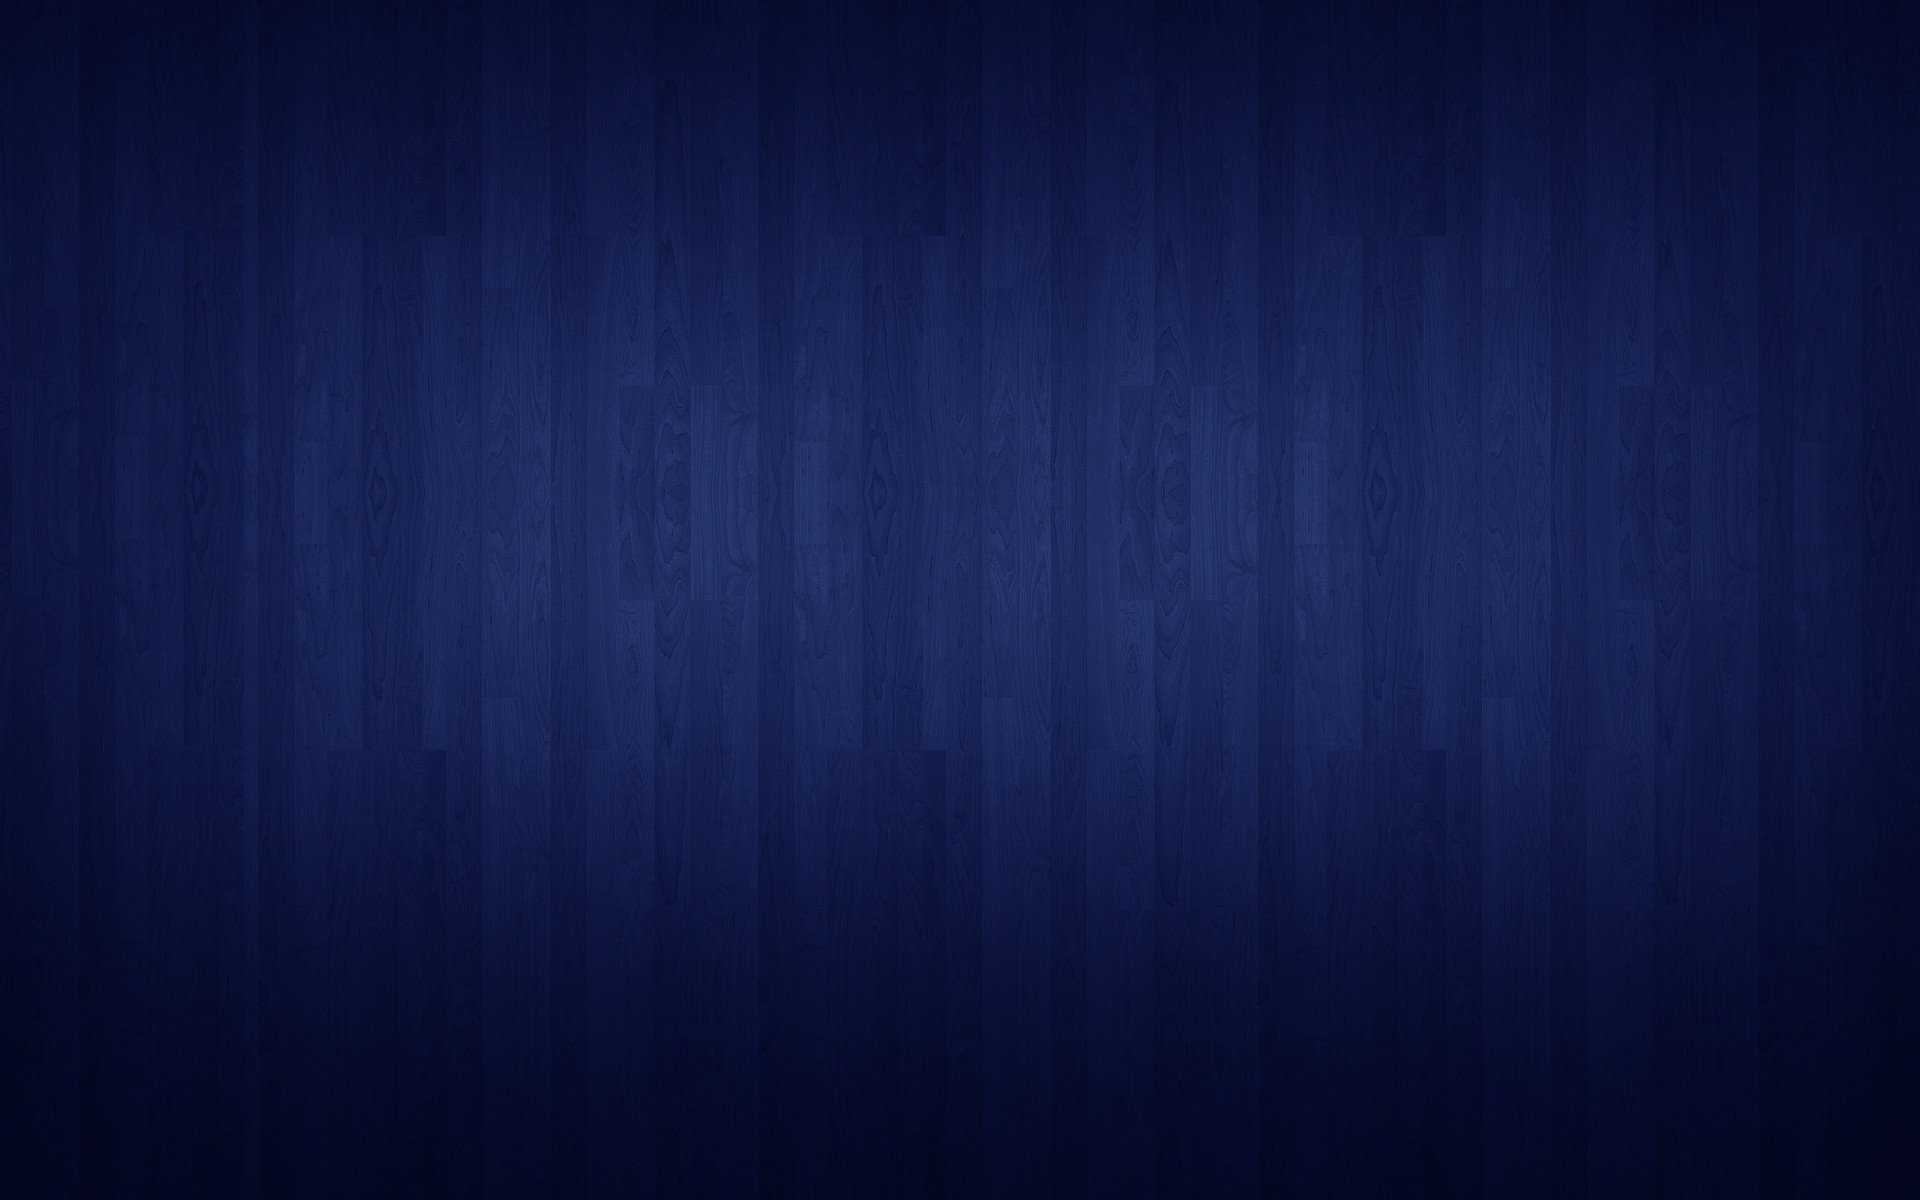 Plain Dark Blue Wallpapers and Background 1920x1200